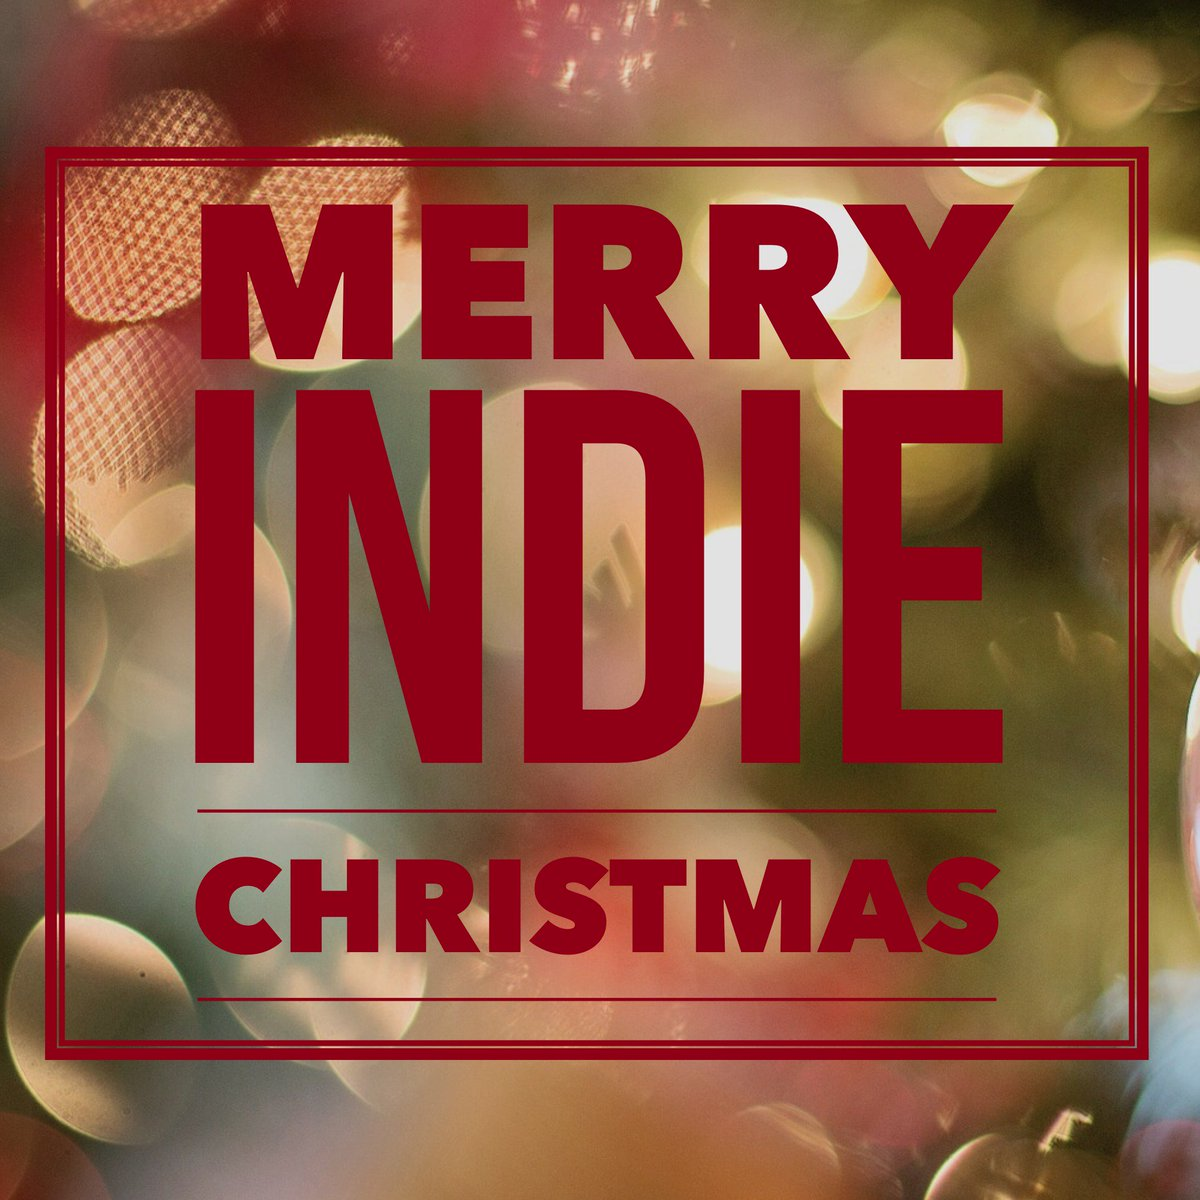 Have you guys checked out our Christmas playlist? It features our favorite indie artists! https://t.co/FomUBLWWMF https://t.co/SLxrzGiXEH